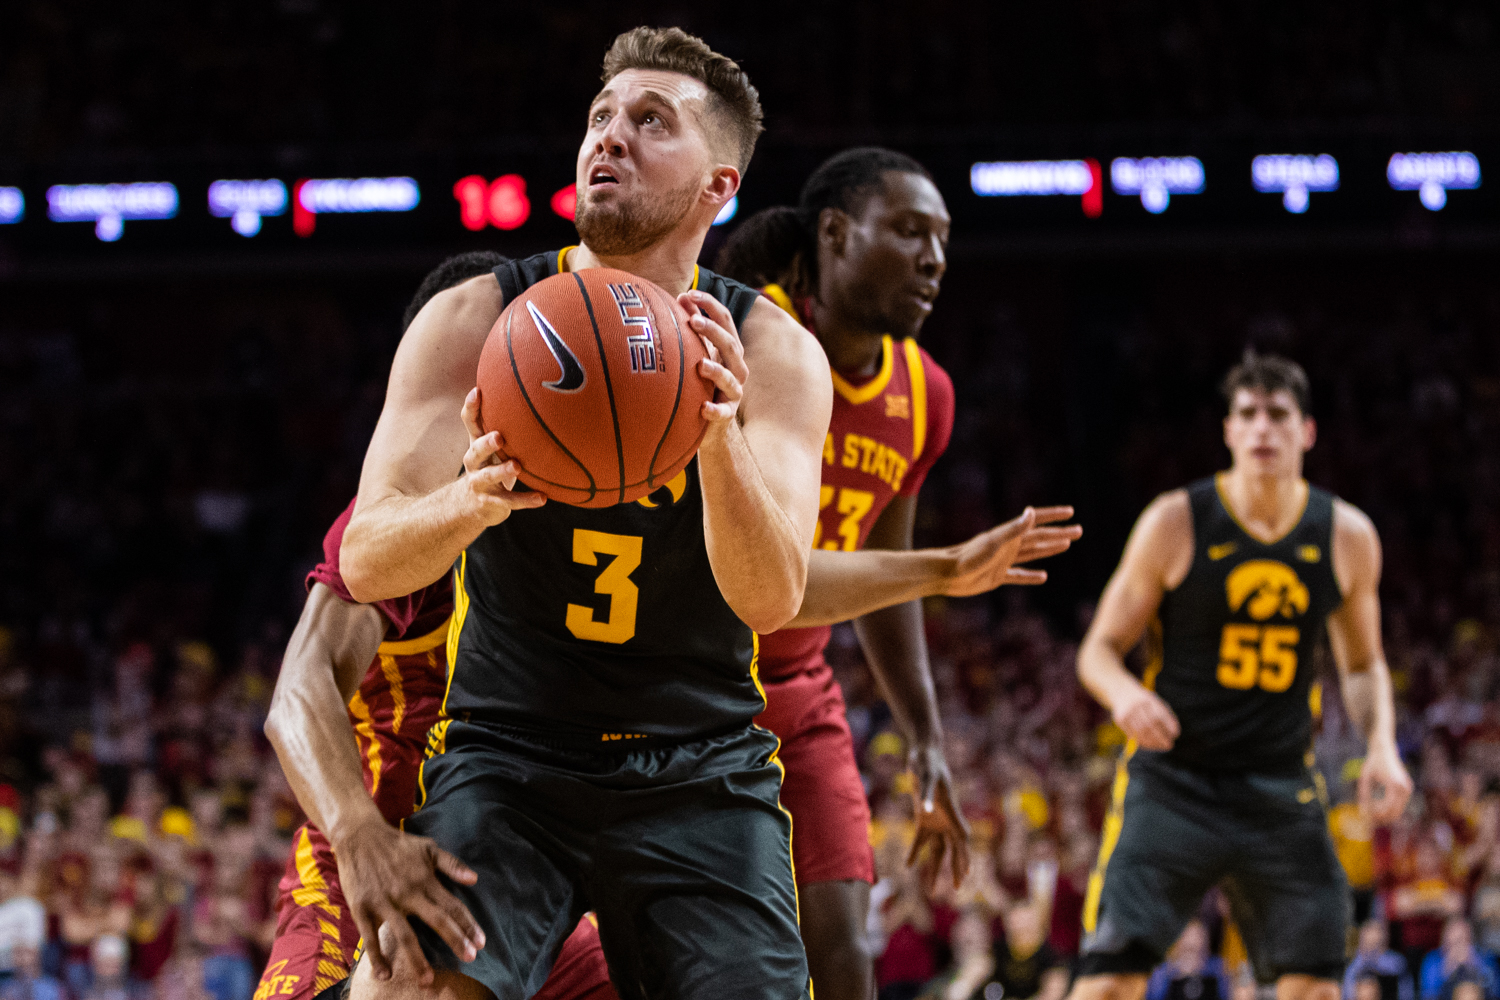 Wieskamp, Garza key Iowa's rout of Minnesota